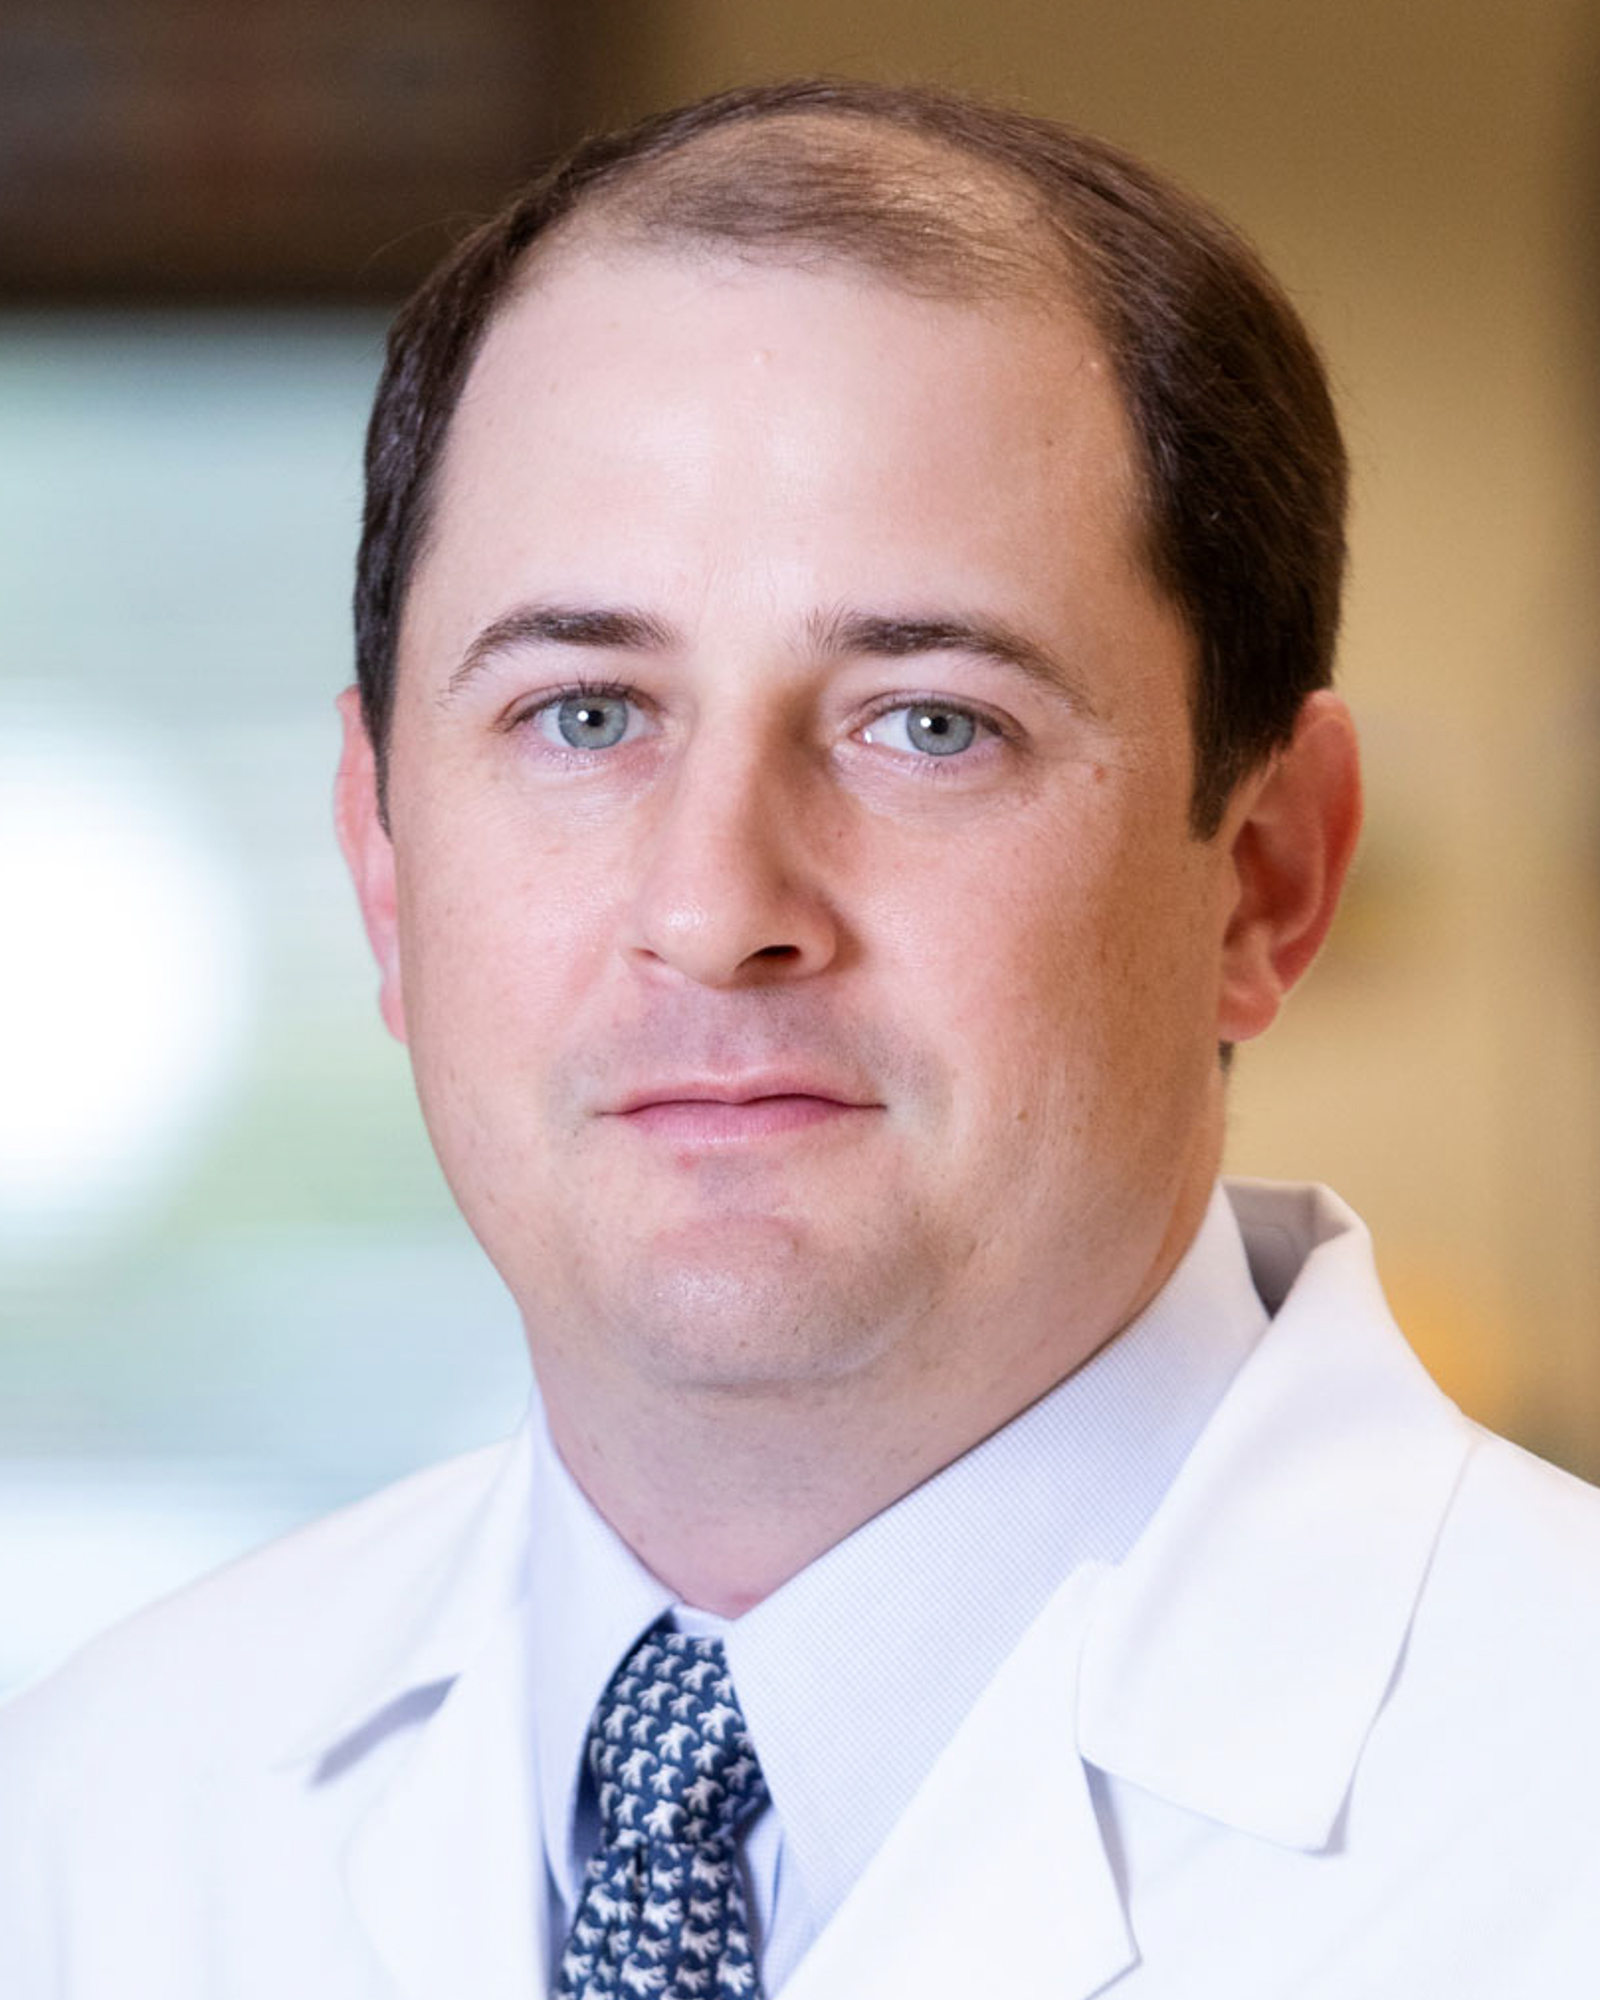 Jared L Braud, M.D.